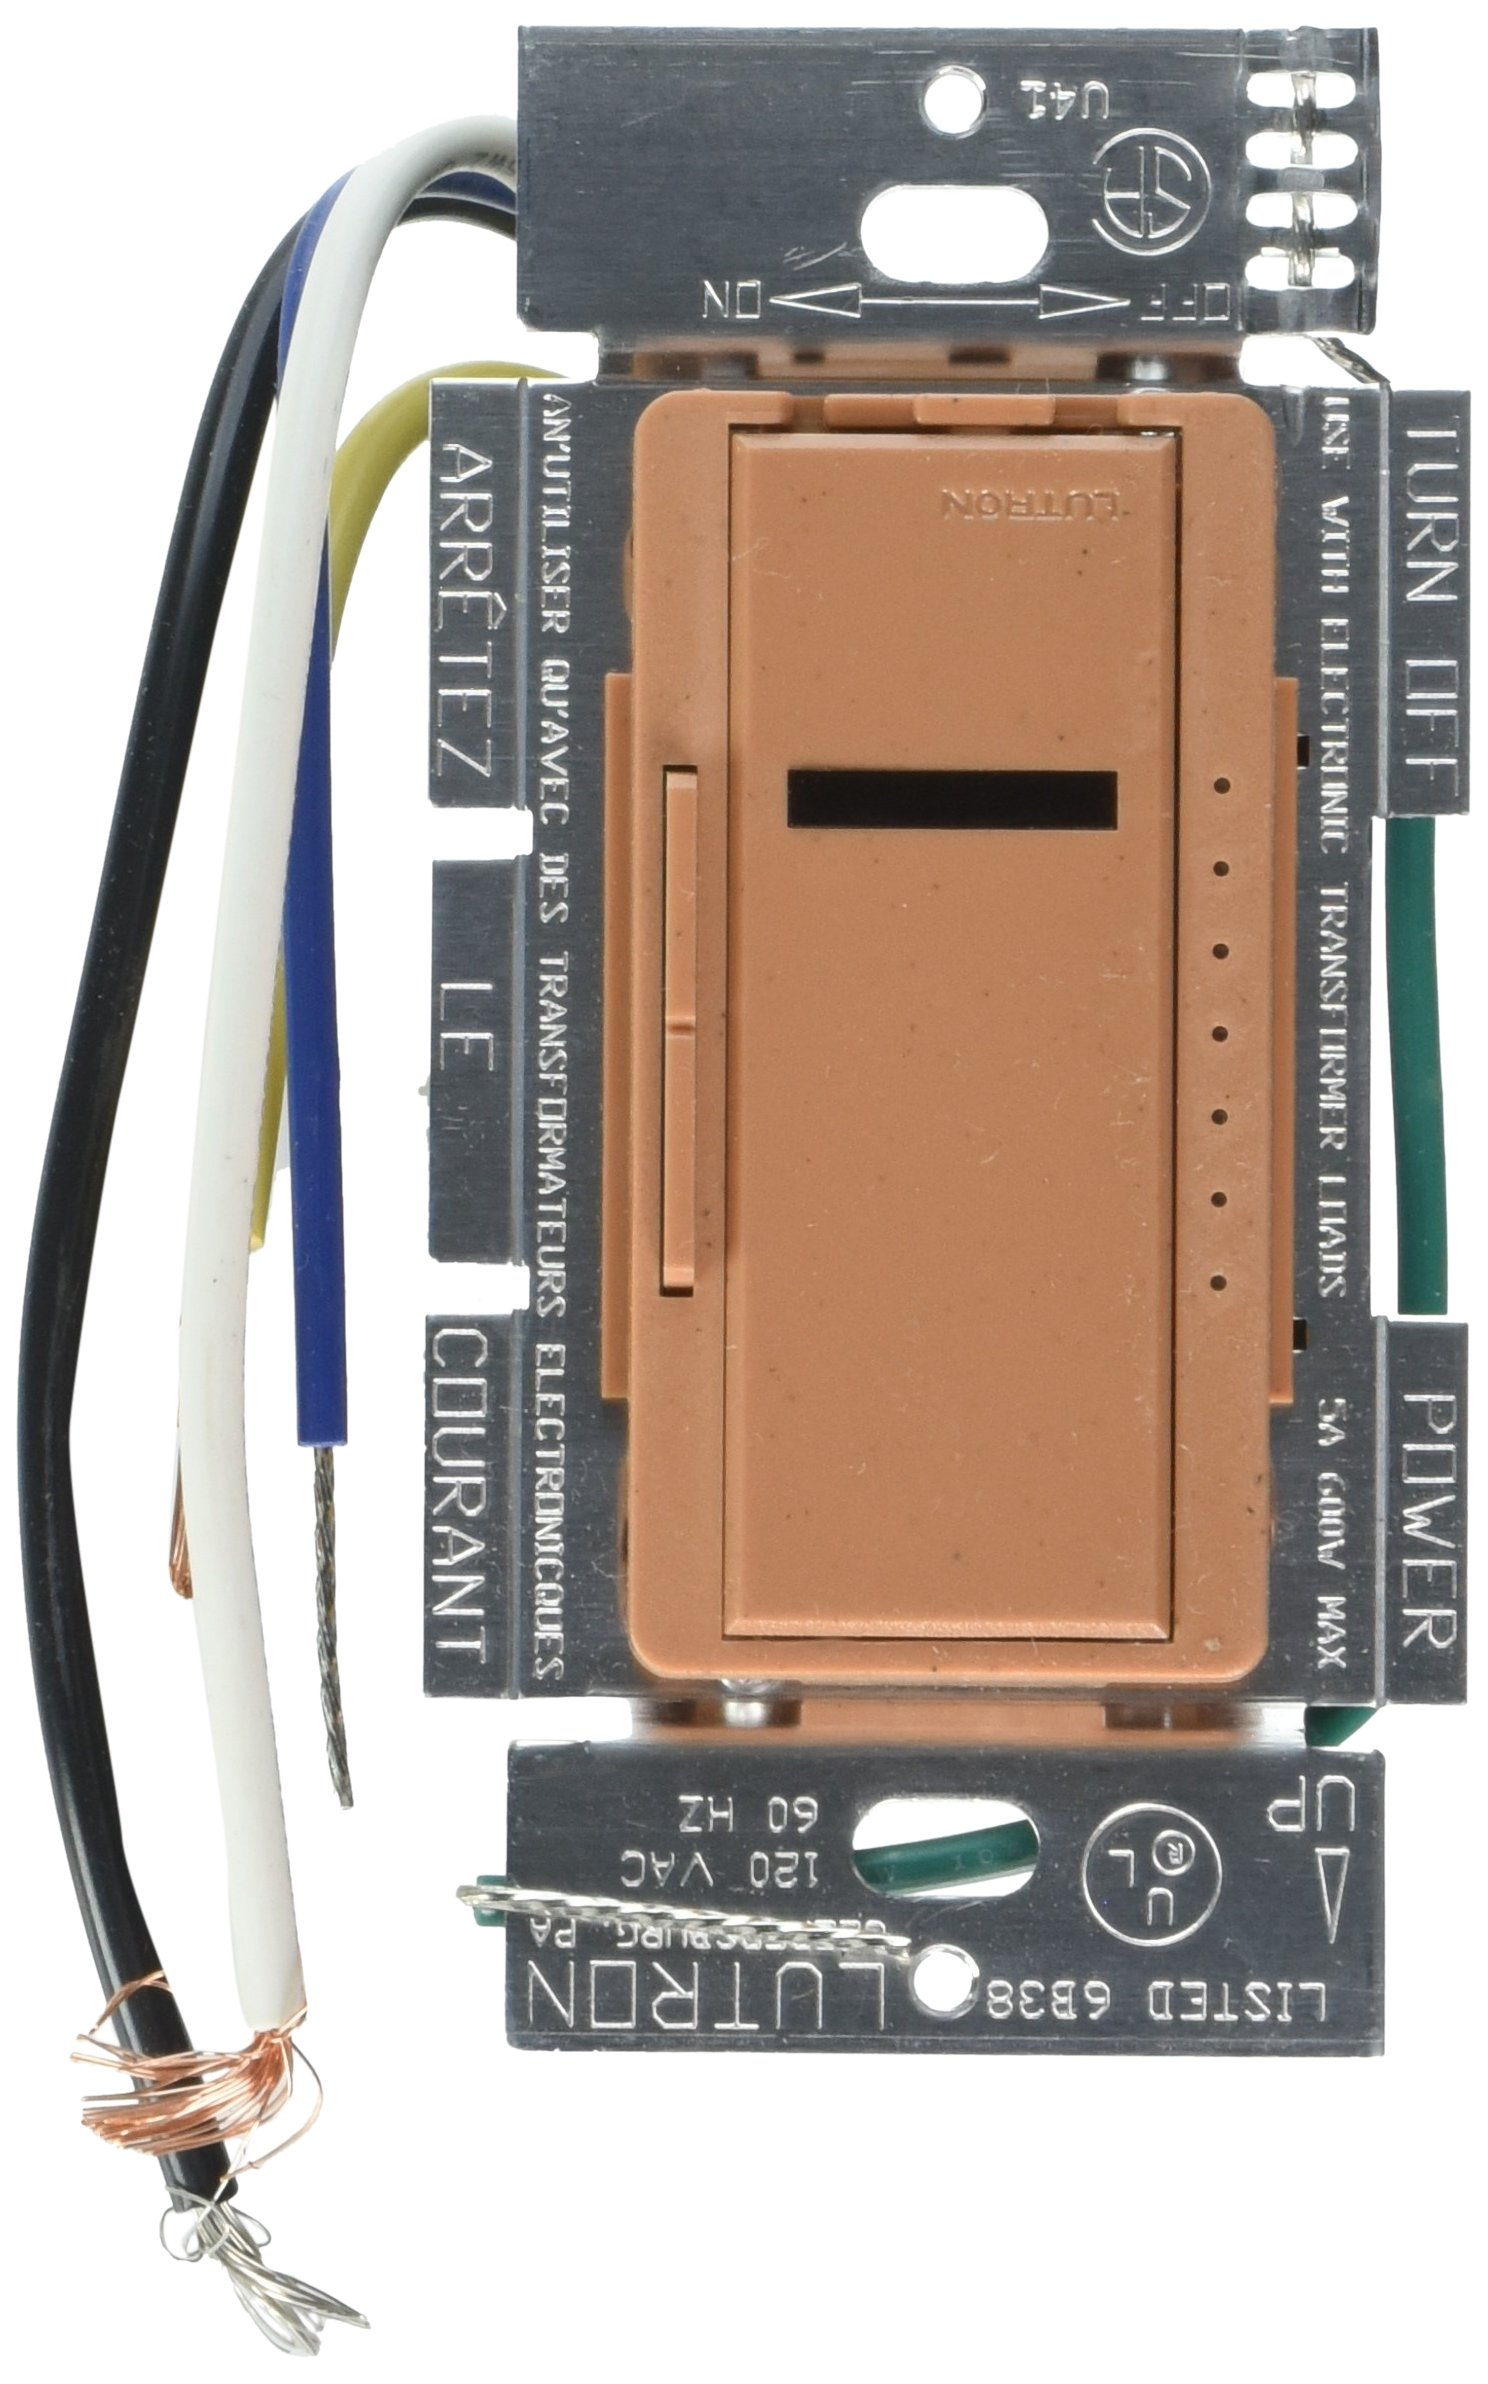 Lutron Lutron MIRELV-600M-TC Maestro IR 600-Watt Multi-Location Electronic Low-Voltage Dimmer, Terracotta by Lutron